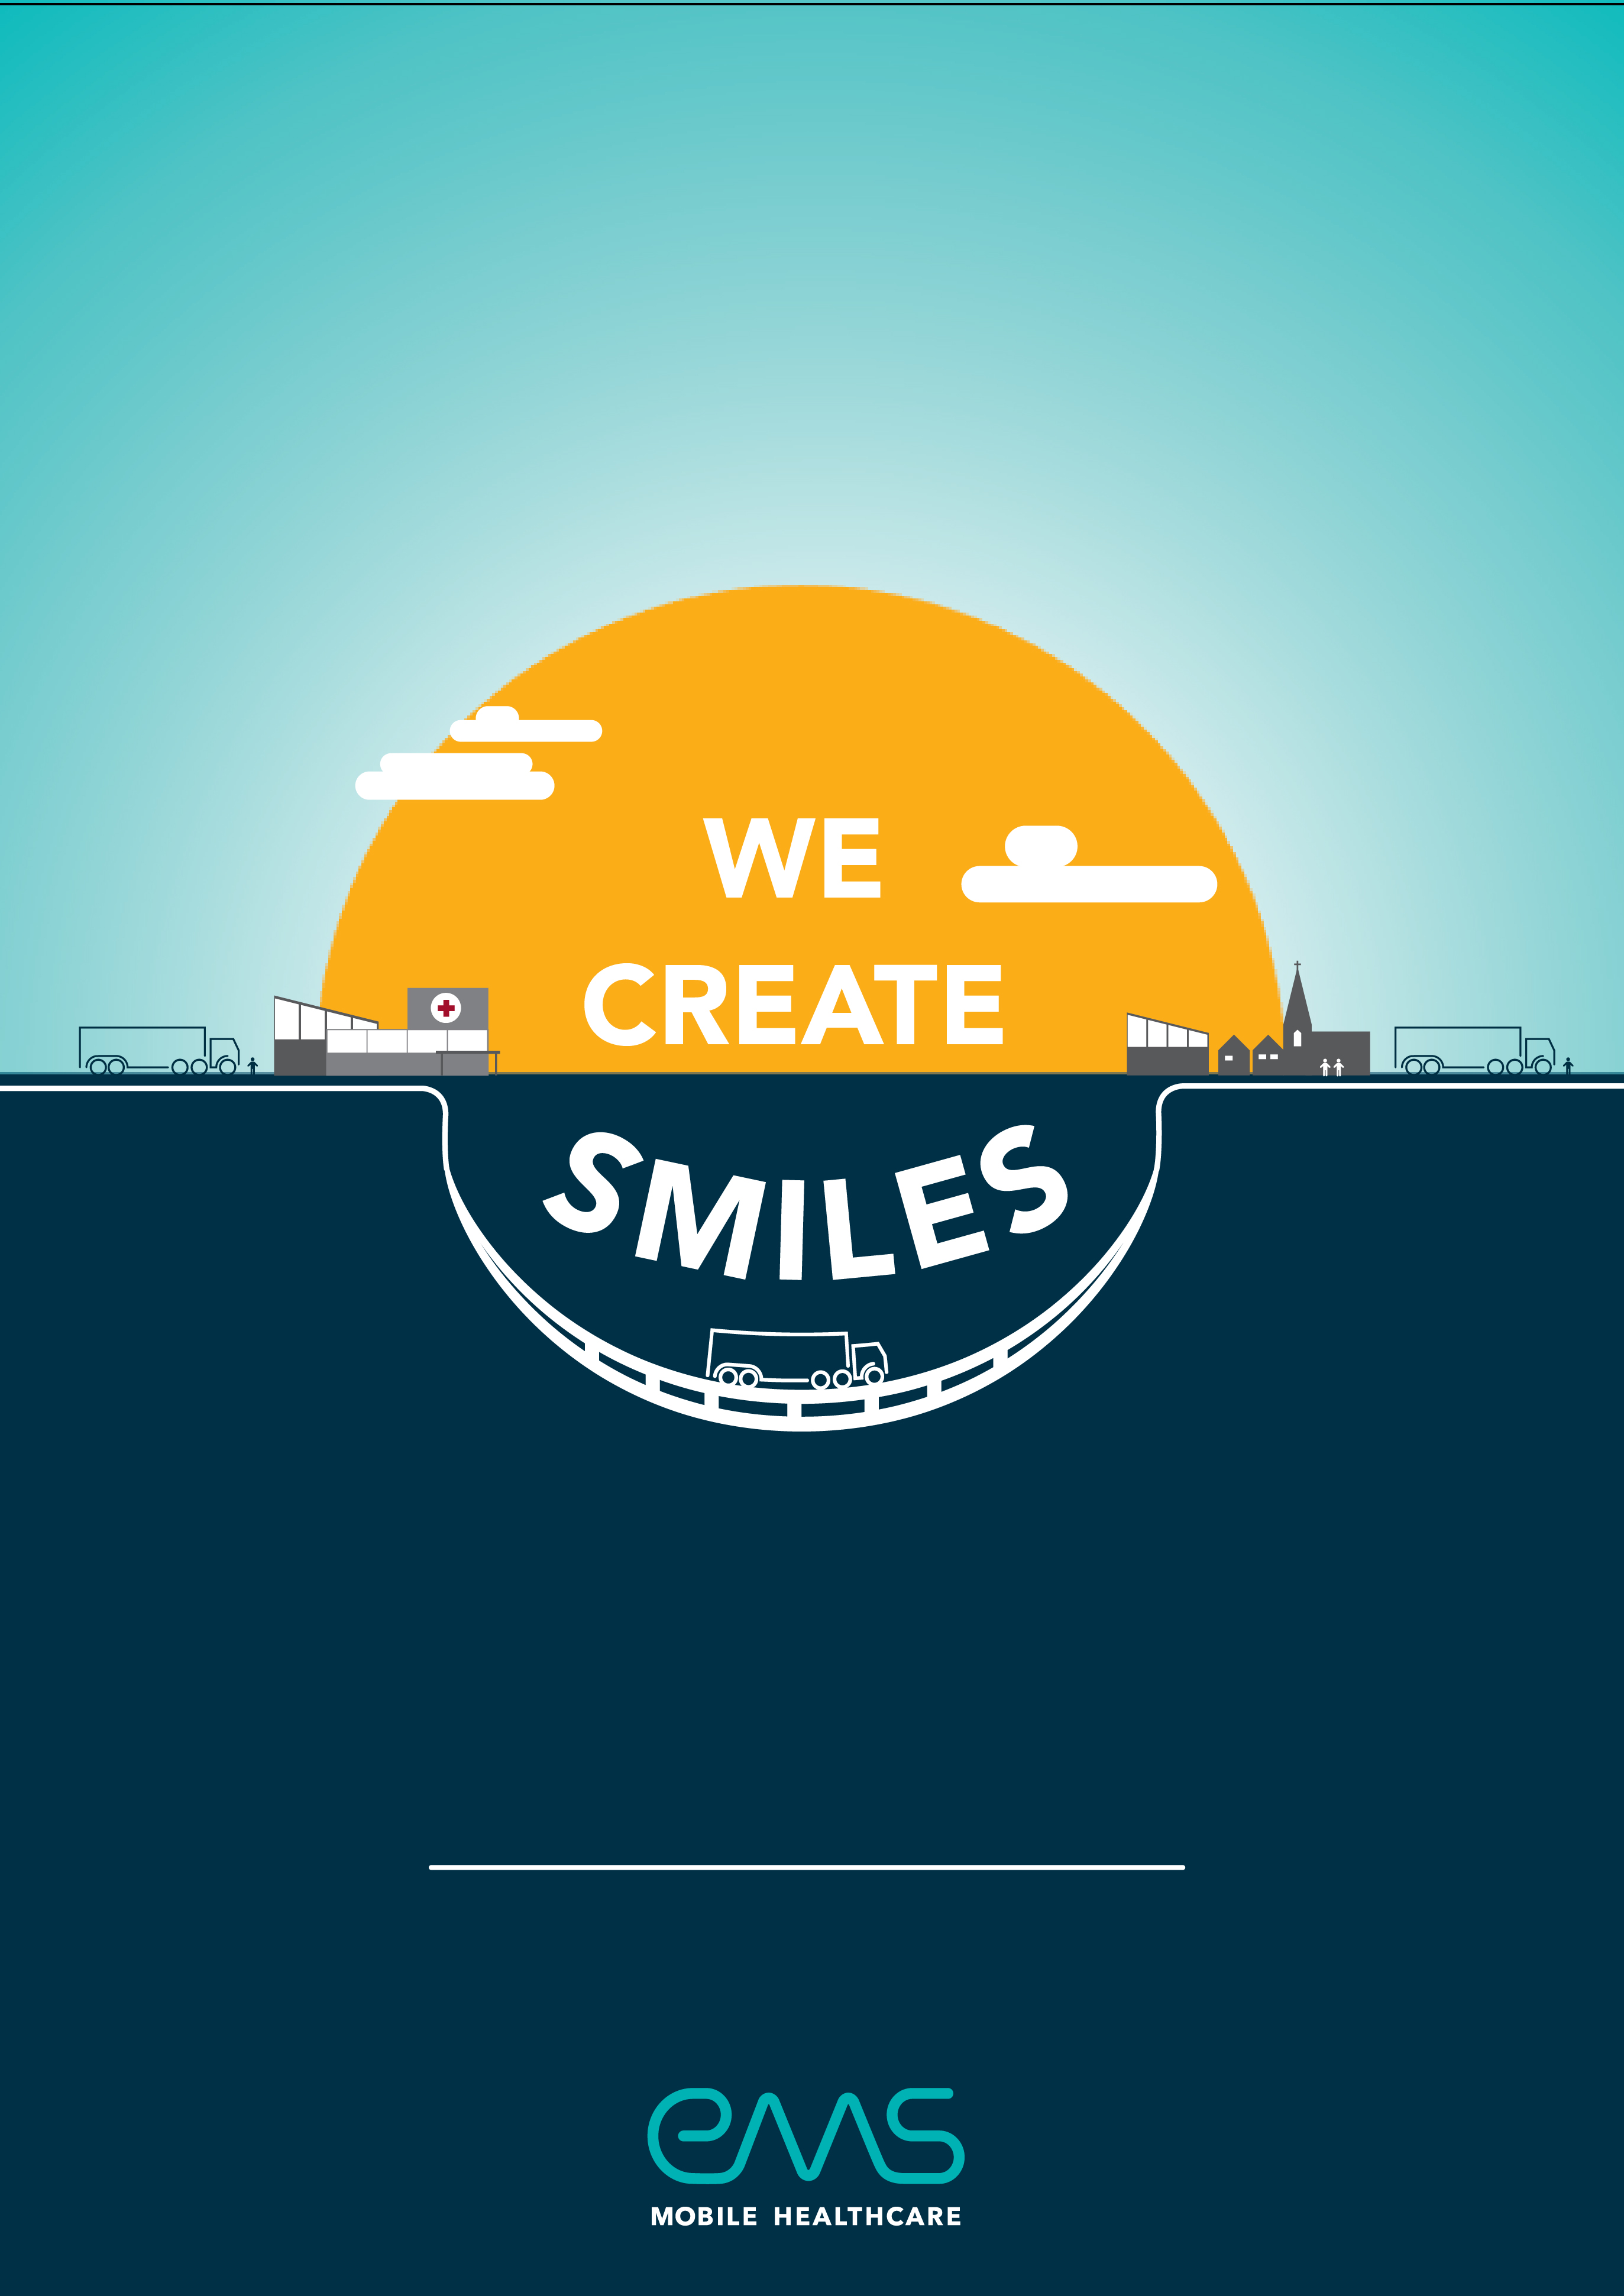 We create smiles